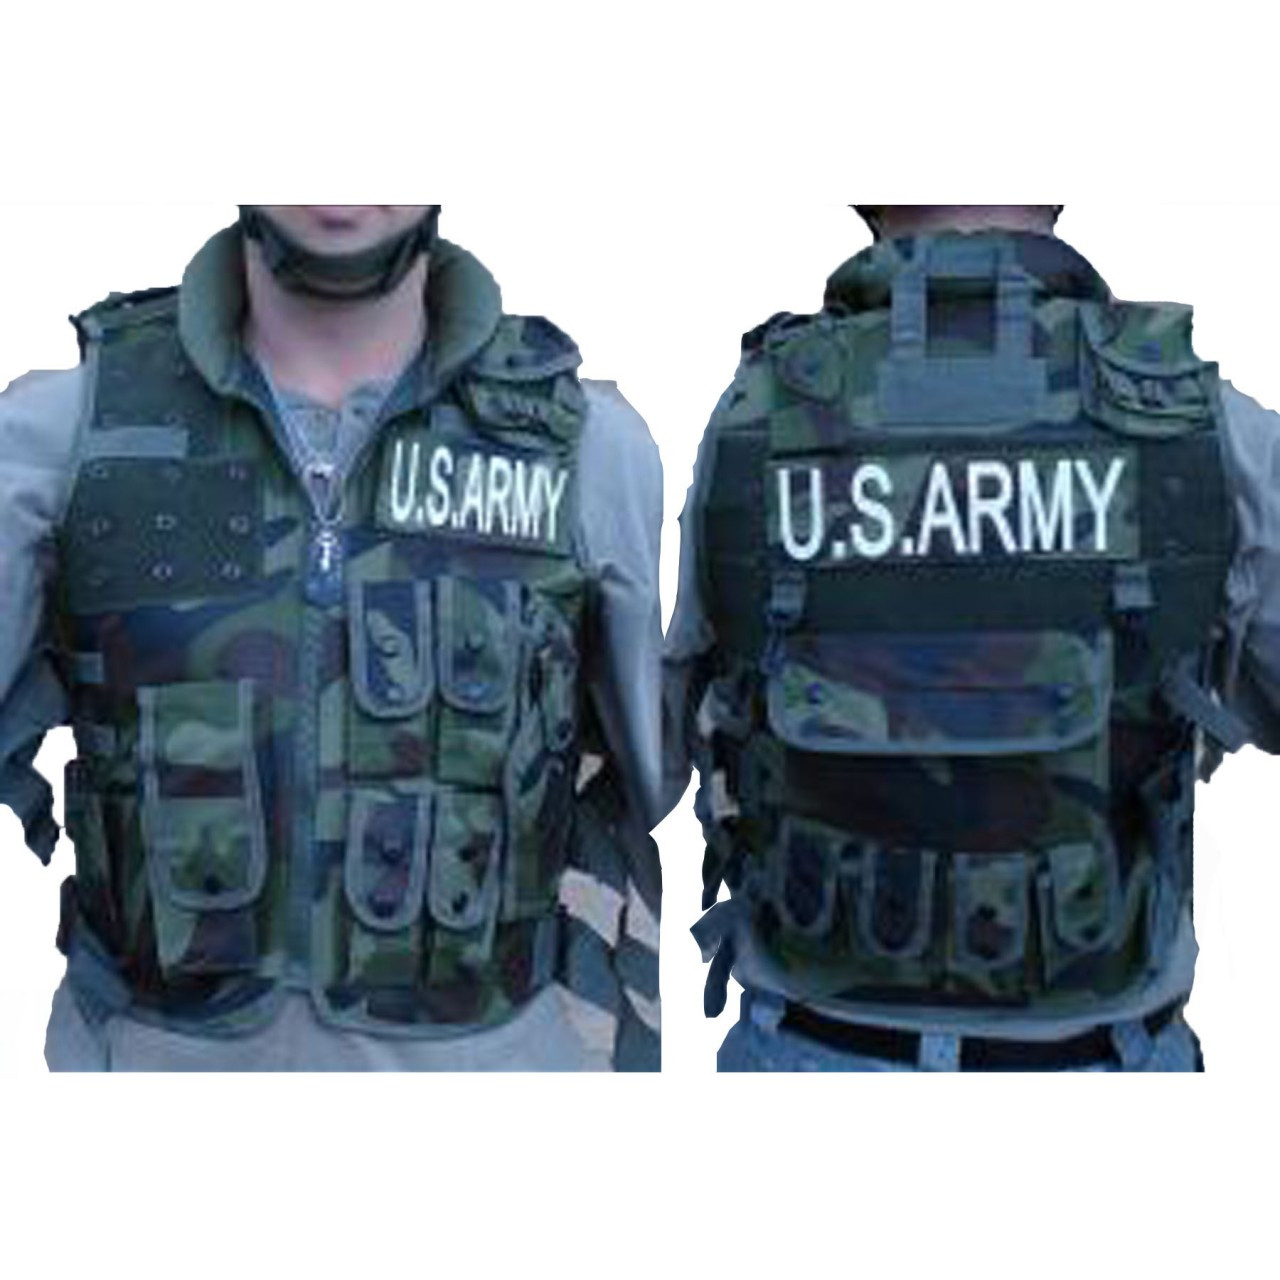 Army US Soldier Vest With Cap Mens Costume